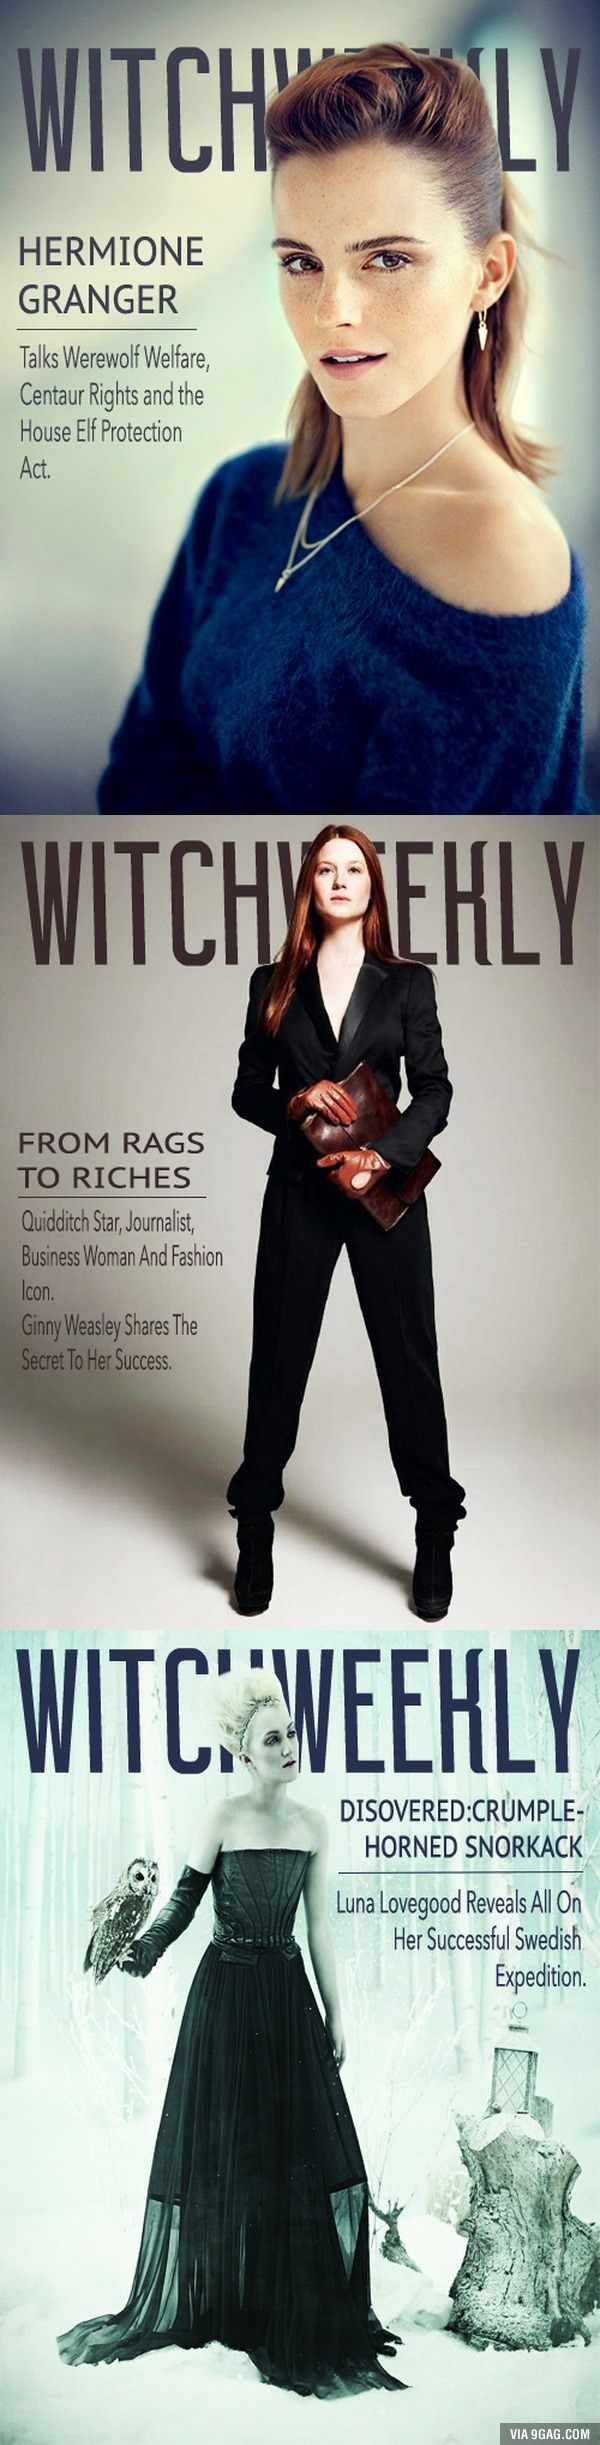 Witch Weekly Covers - Hermione Granger, Ginny Weasley, and Luna Lovegood